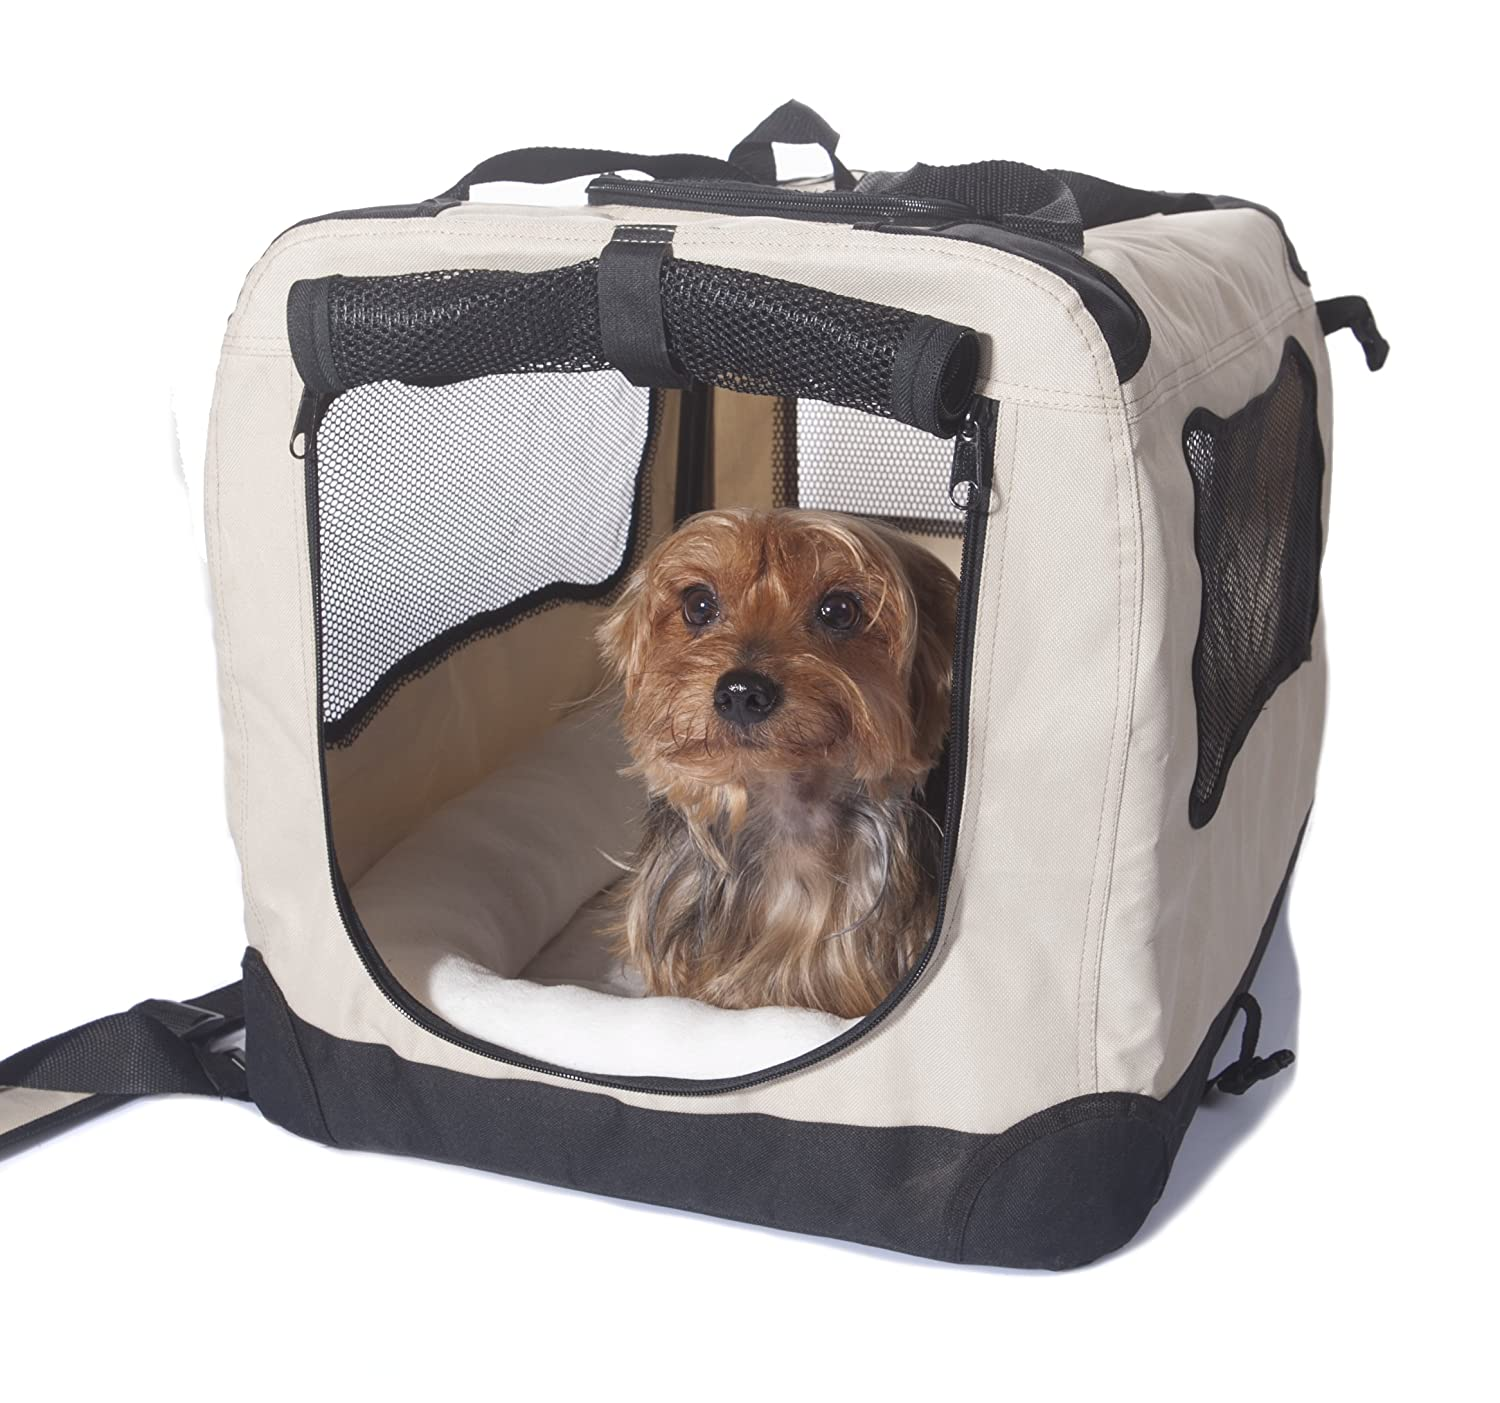 Biscuit Beige Small 20in Biscuit Beige Small 20in 2PET Folding Soft Dog Crate for Indoor, Travel, Training for Pets up to 15 lbs Small 20 Inches Beige